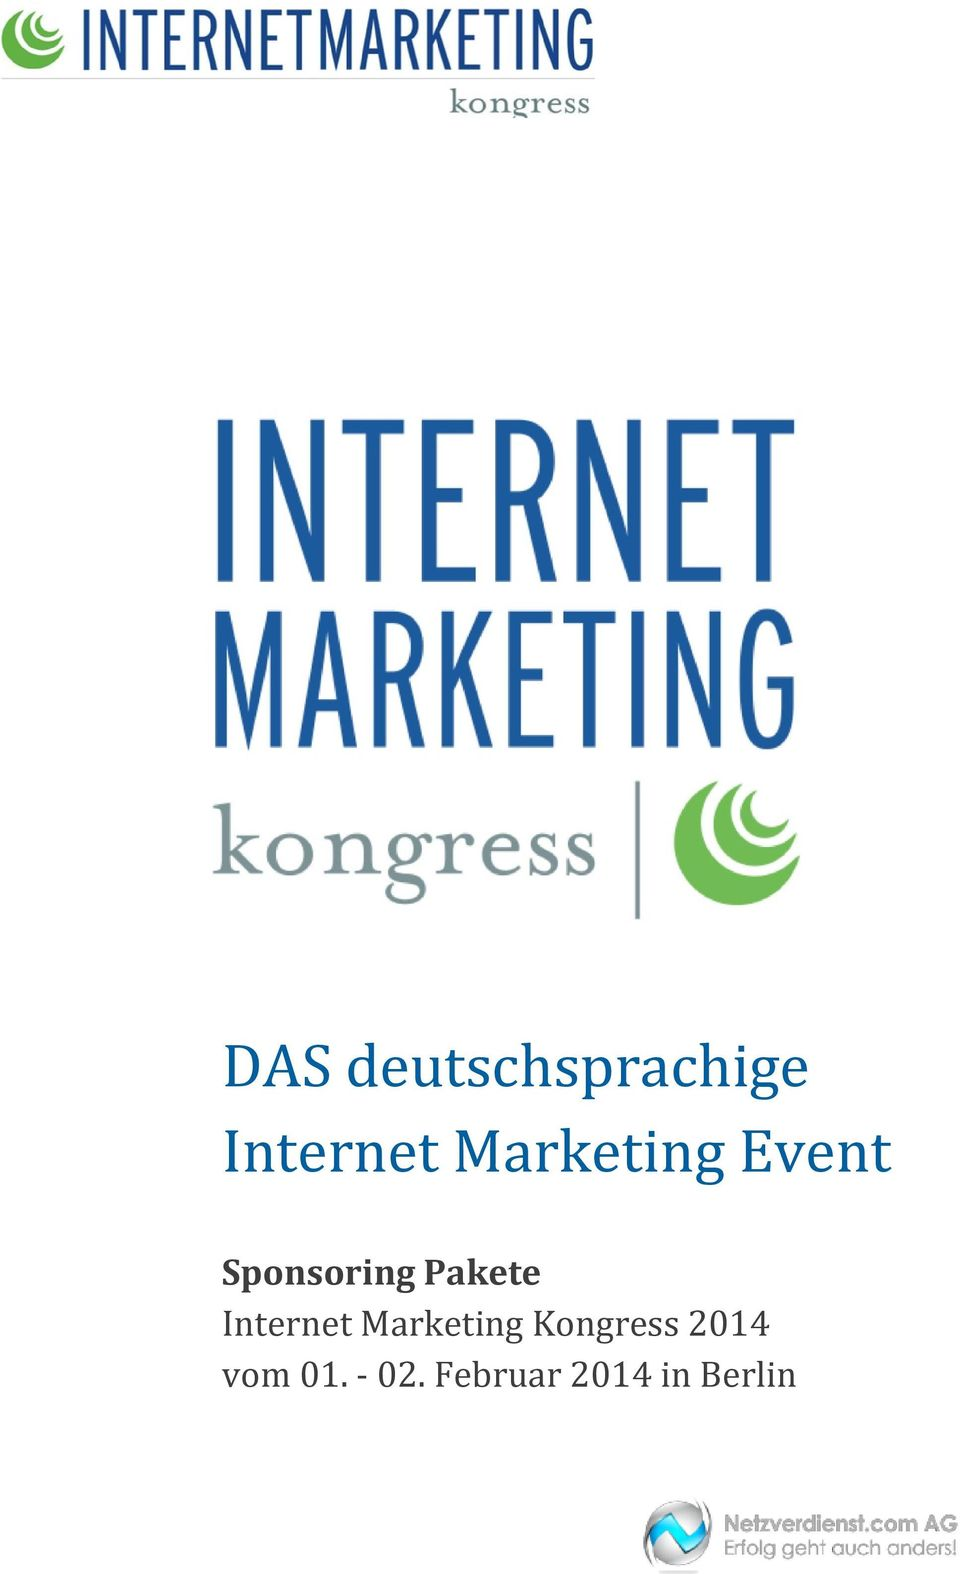 Internet Marketing Kongress 2014